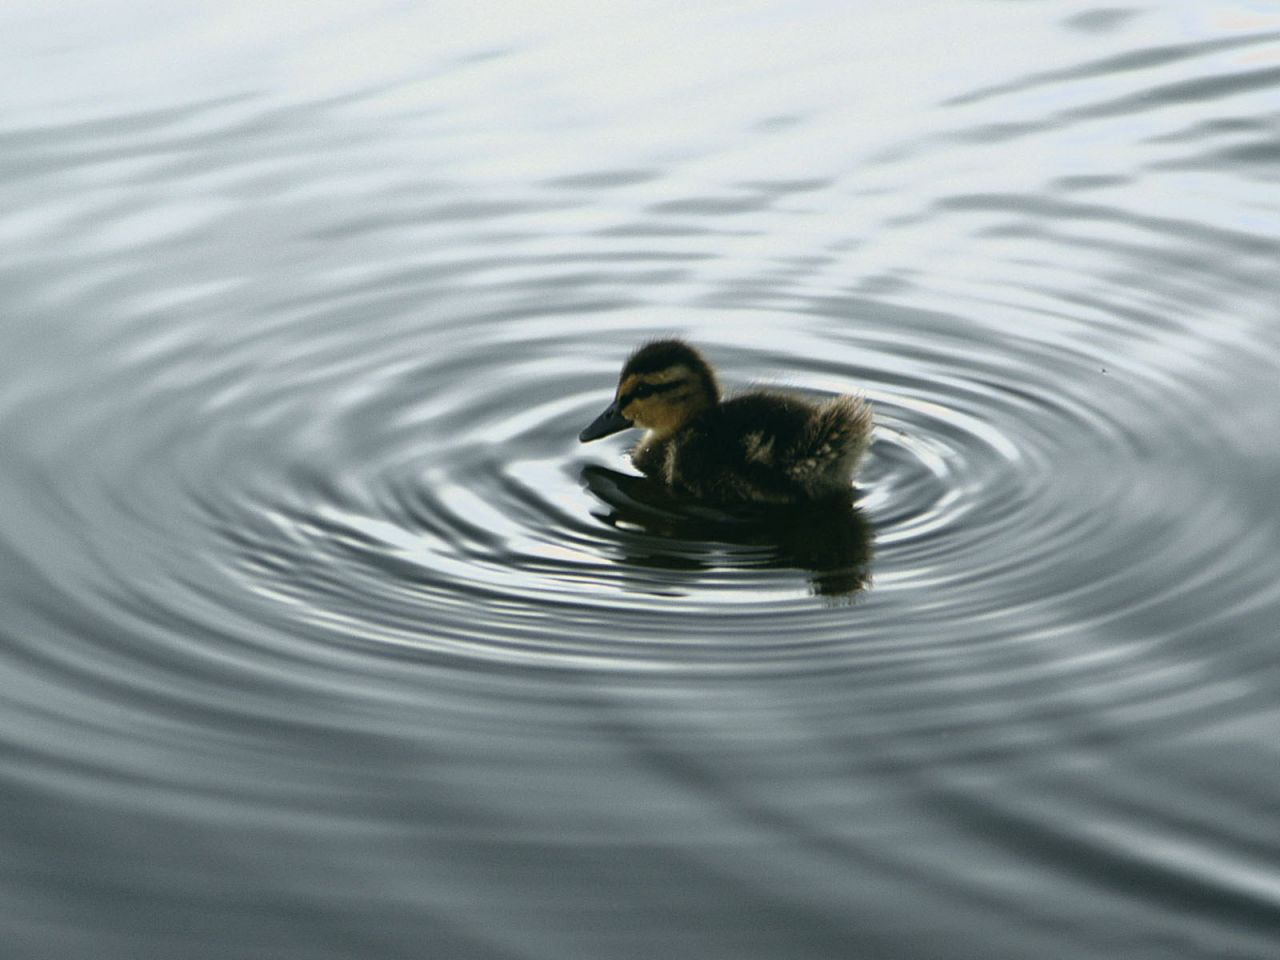 Small Duckling In The Water Wallpaper 1280x960